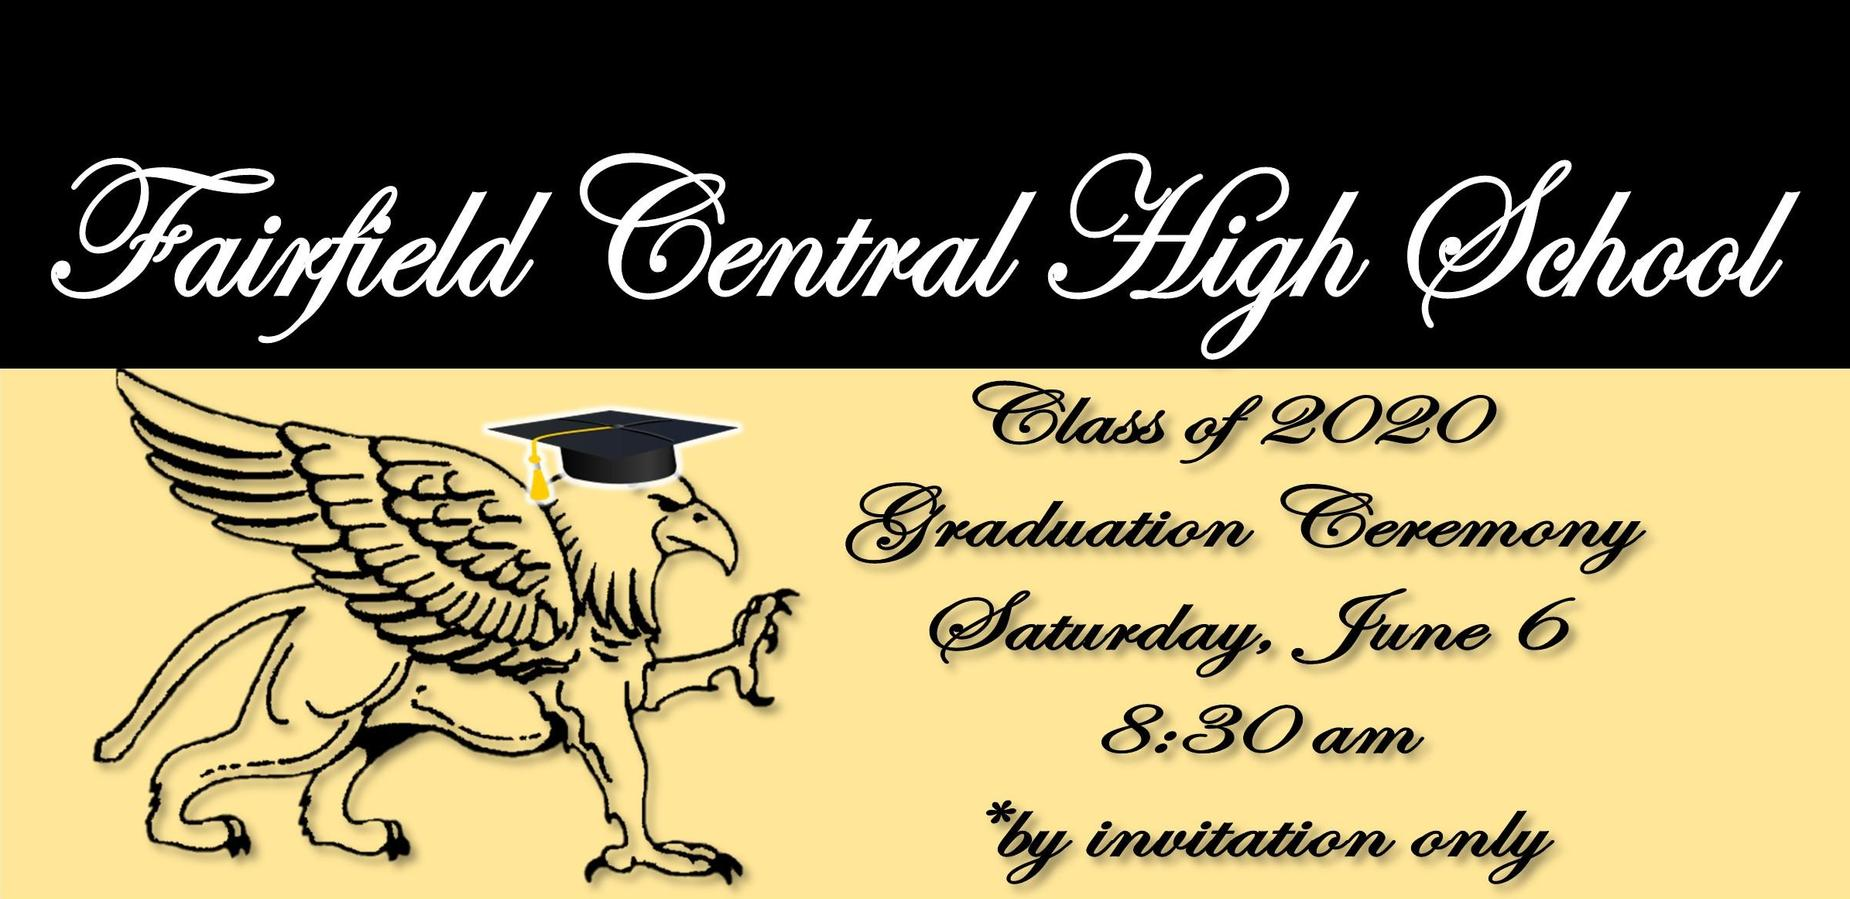 FCHS  Class of 2020 Graduation Ceremony Saturday, June 6 8:30 am *by invitation only